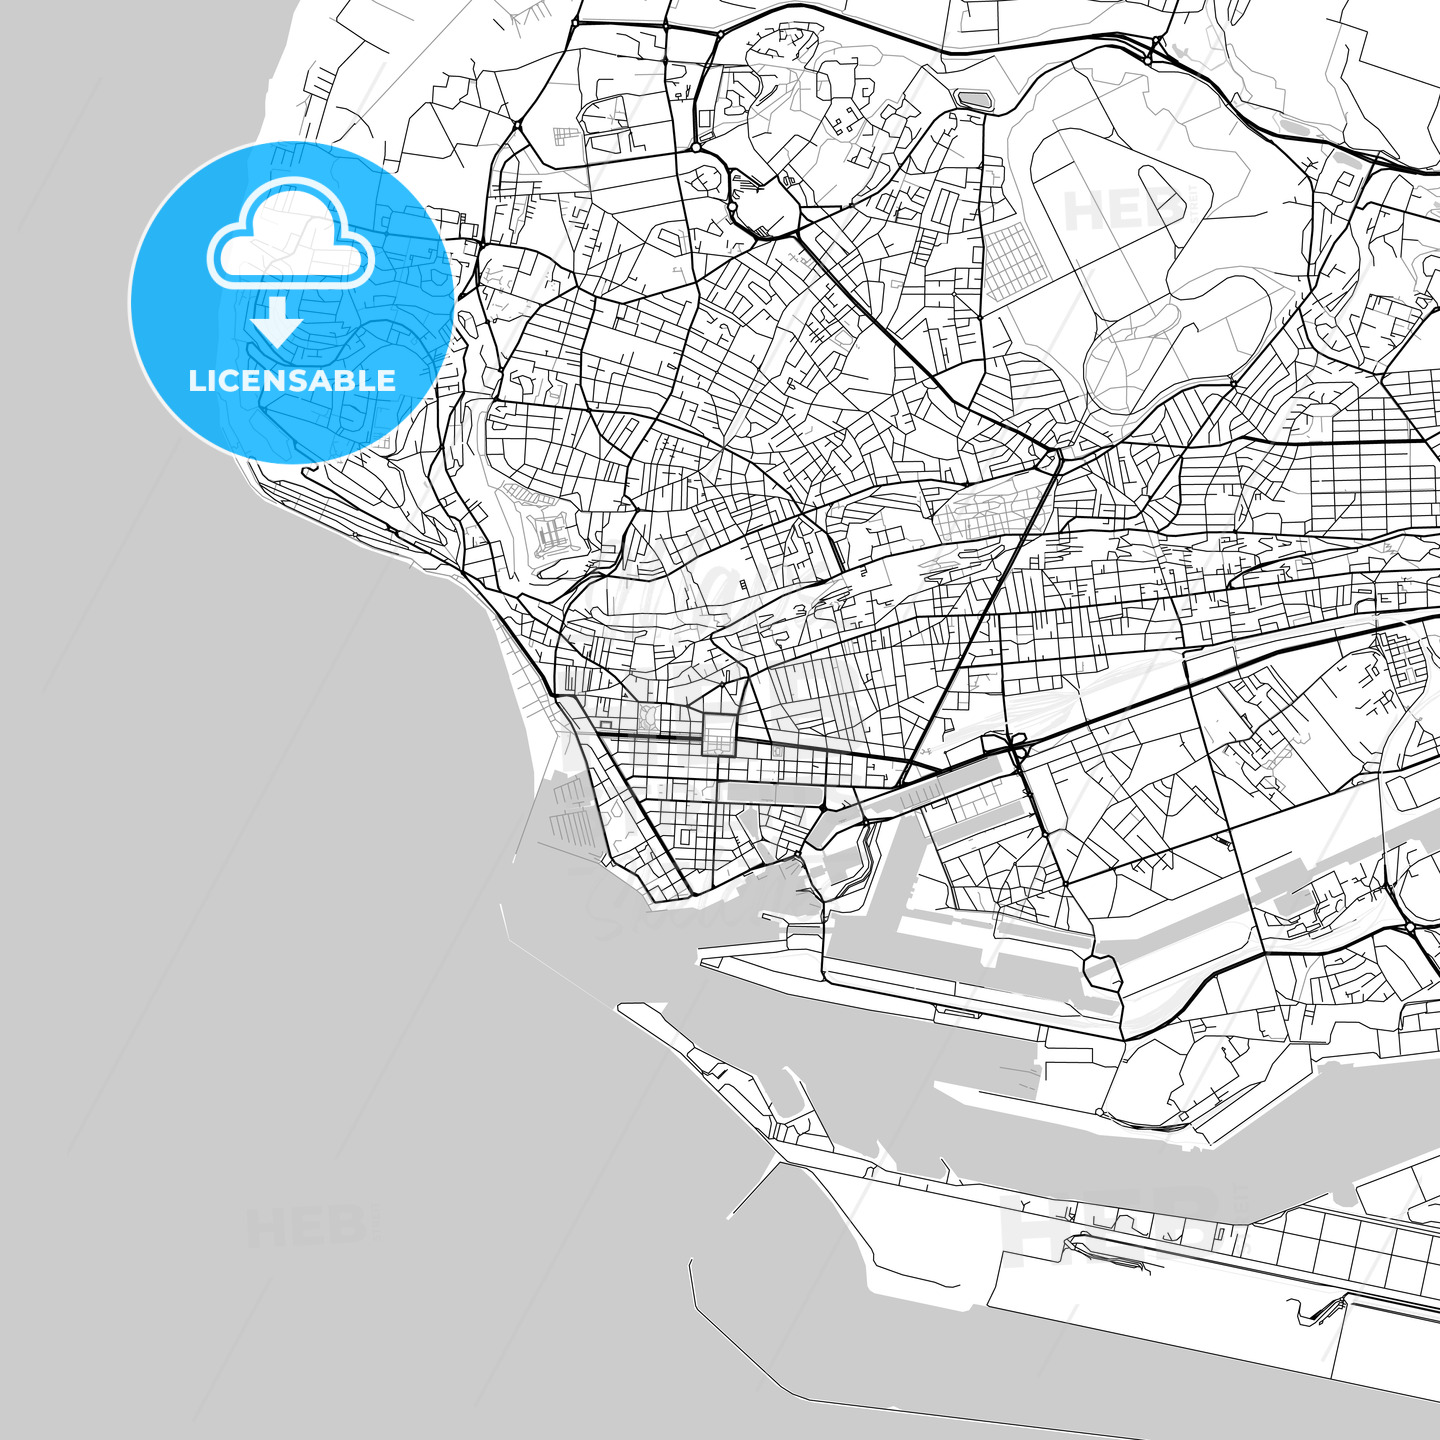 Le Havre, Seine-Maritime, Downtown Vector Map - HEBSTREITS